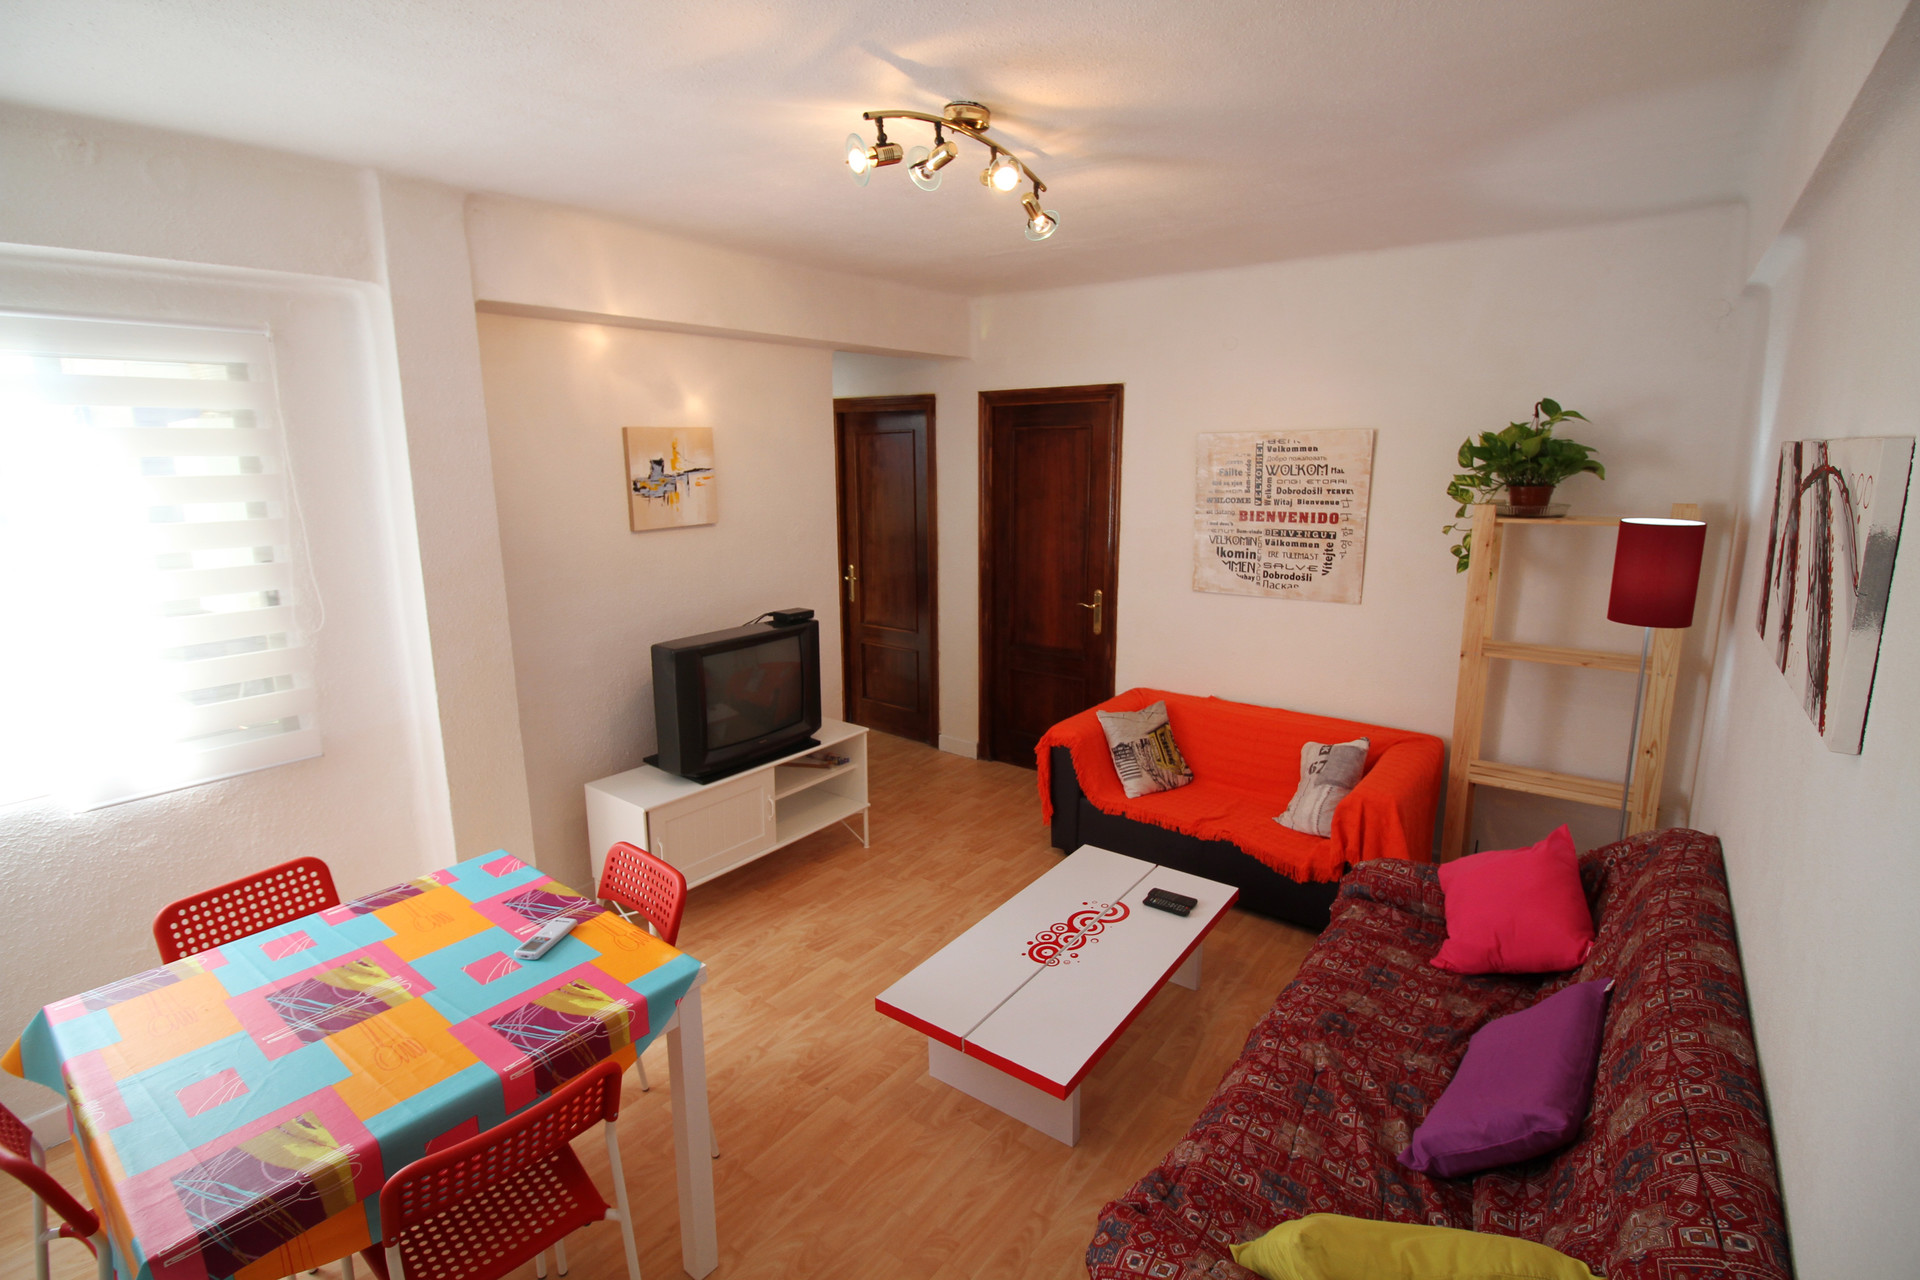 beautifully decorated 4 bedroom flat, perfect for erasmus studentsbeautifully decorated 4 bedroom flat, perfect for erasmus studen